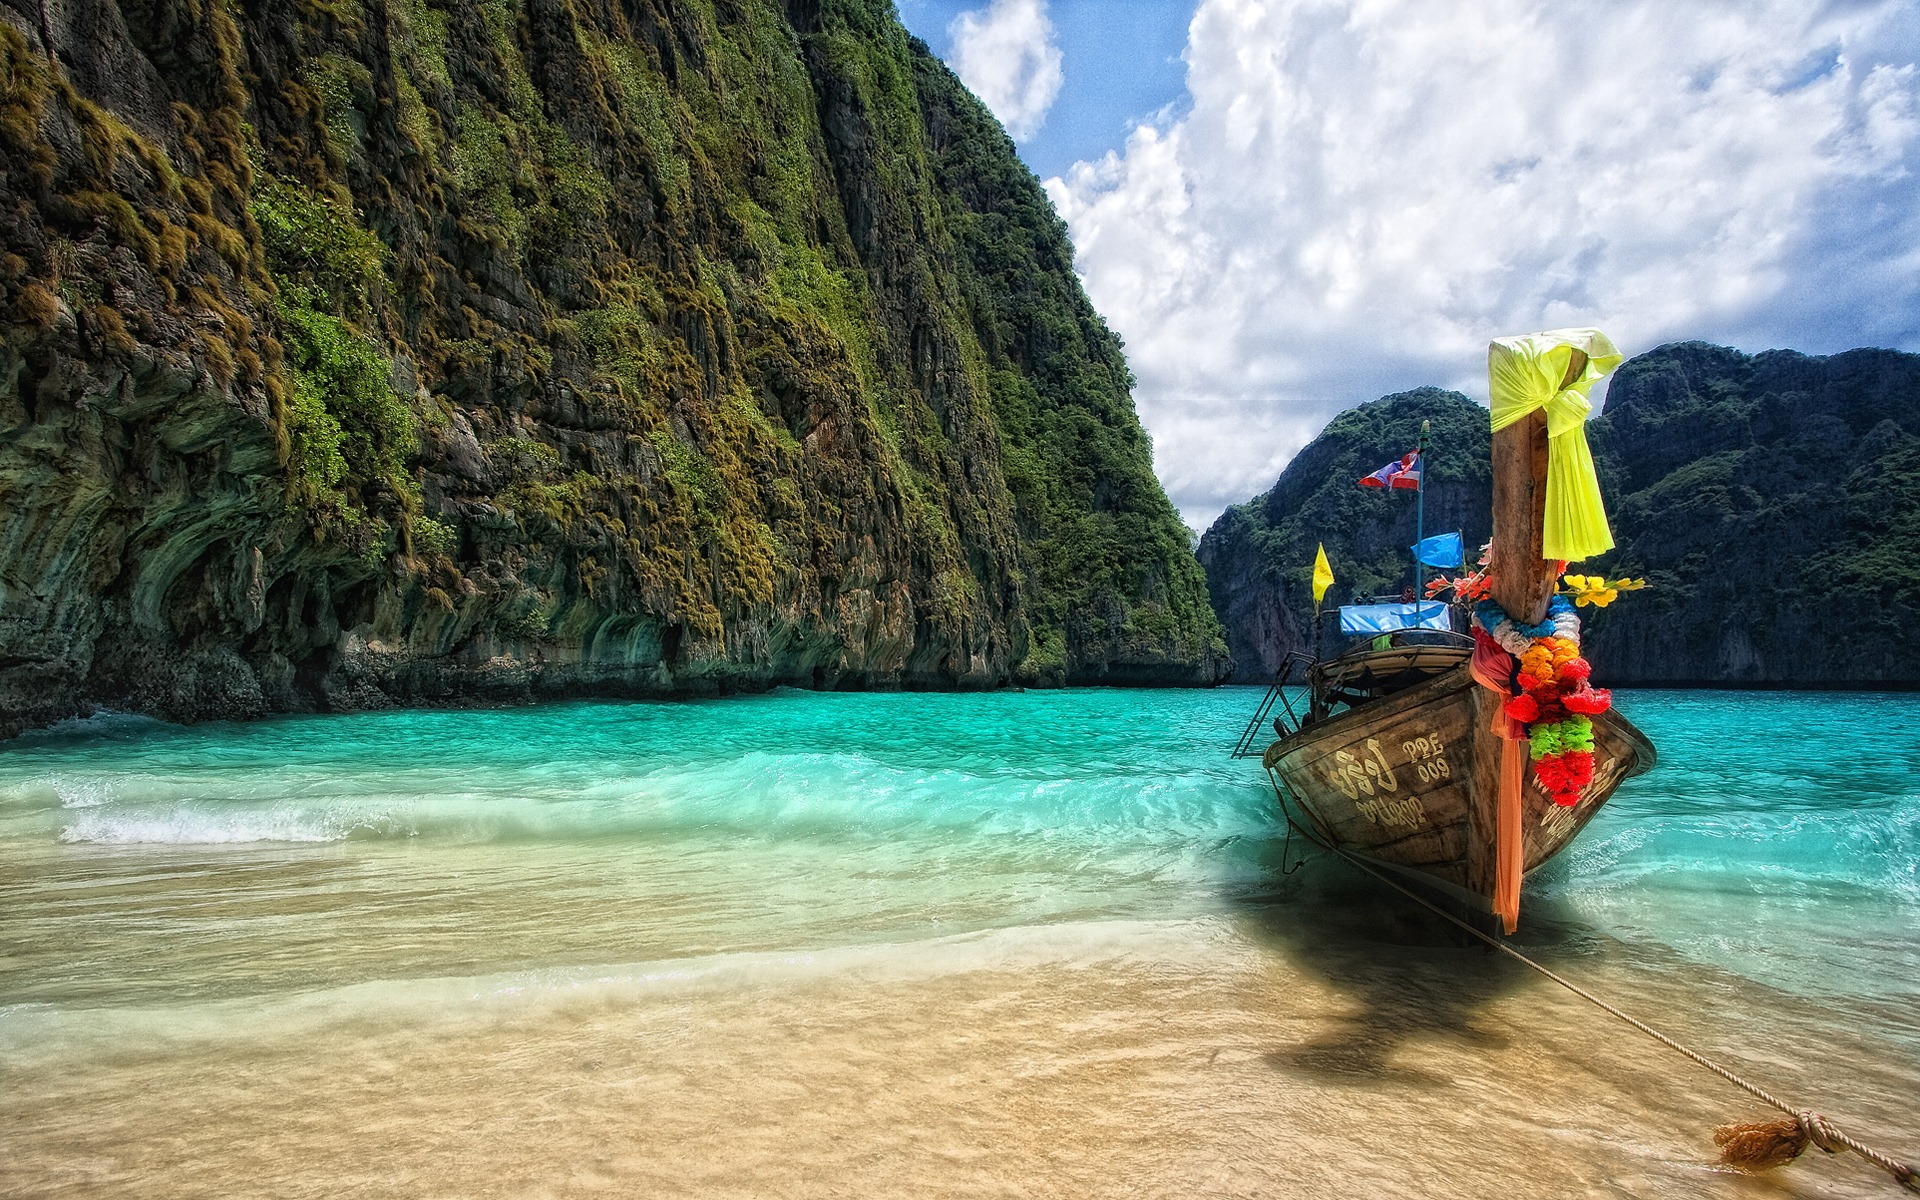 Amazing Blue Waters of Maya Bay, Koh Phi Phi, Phang Nga Bay ...